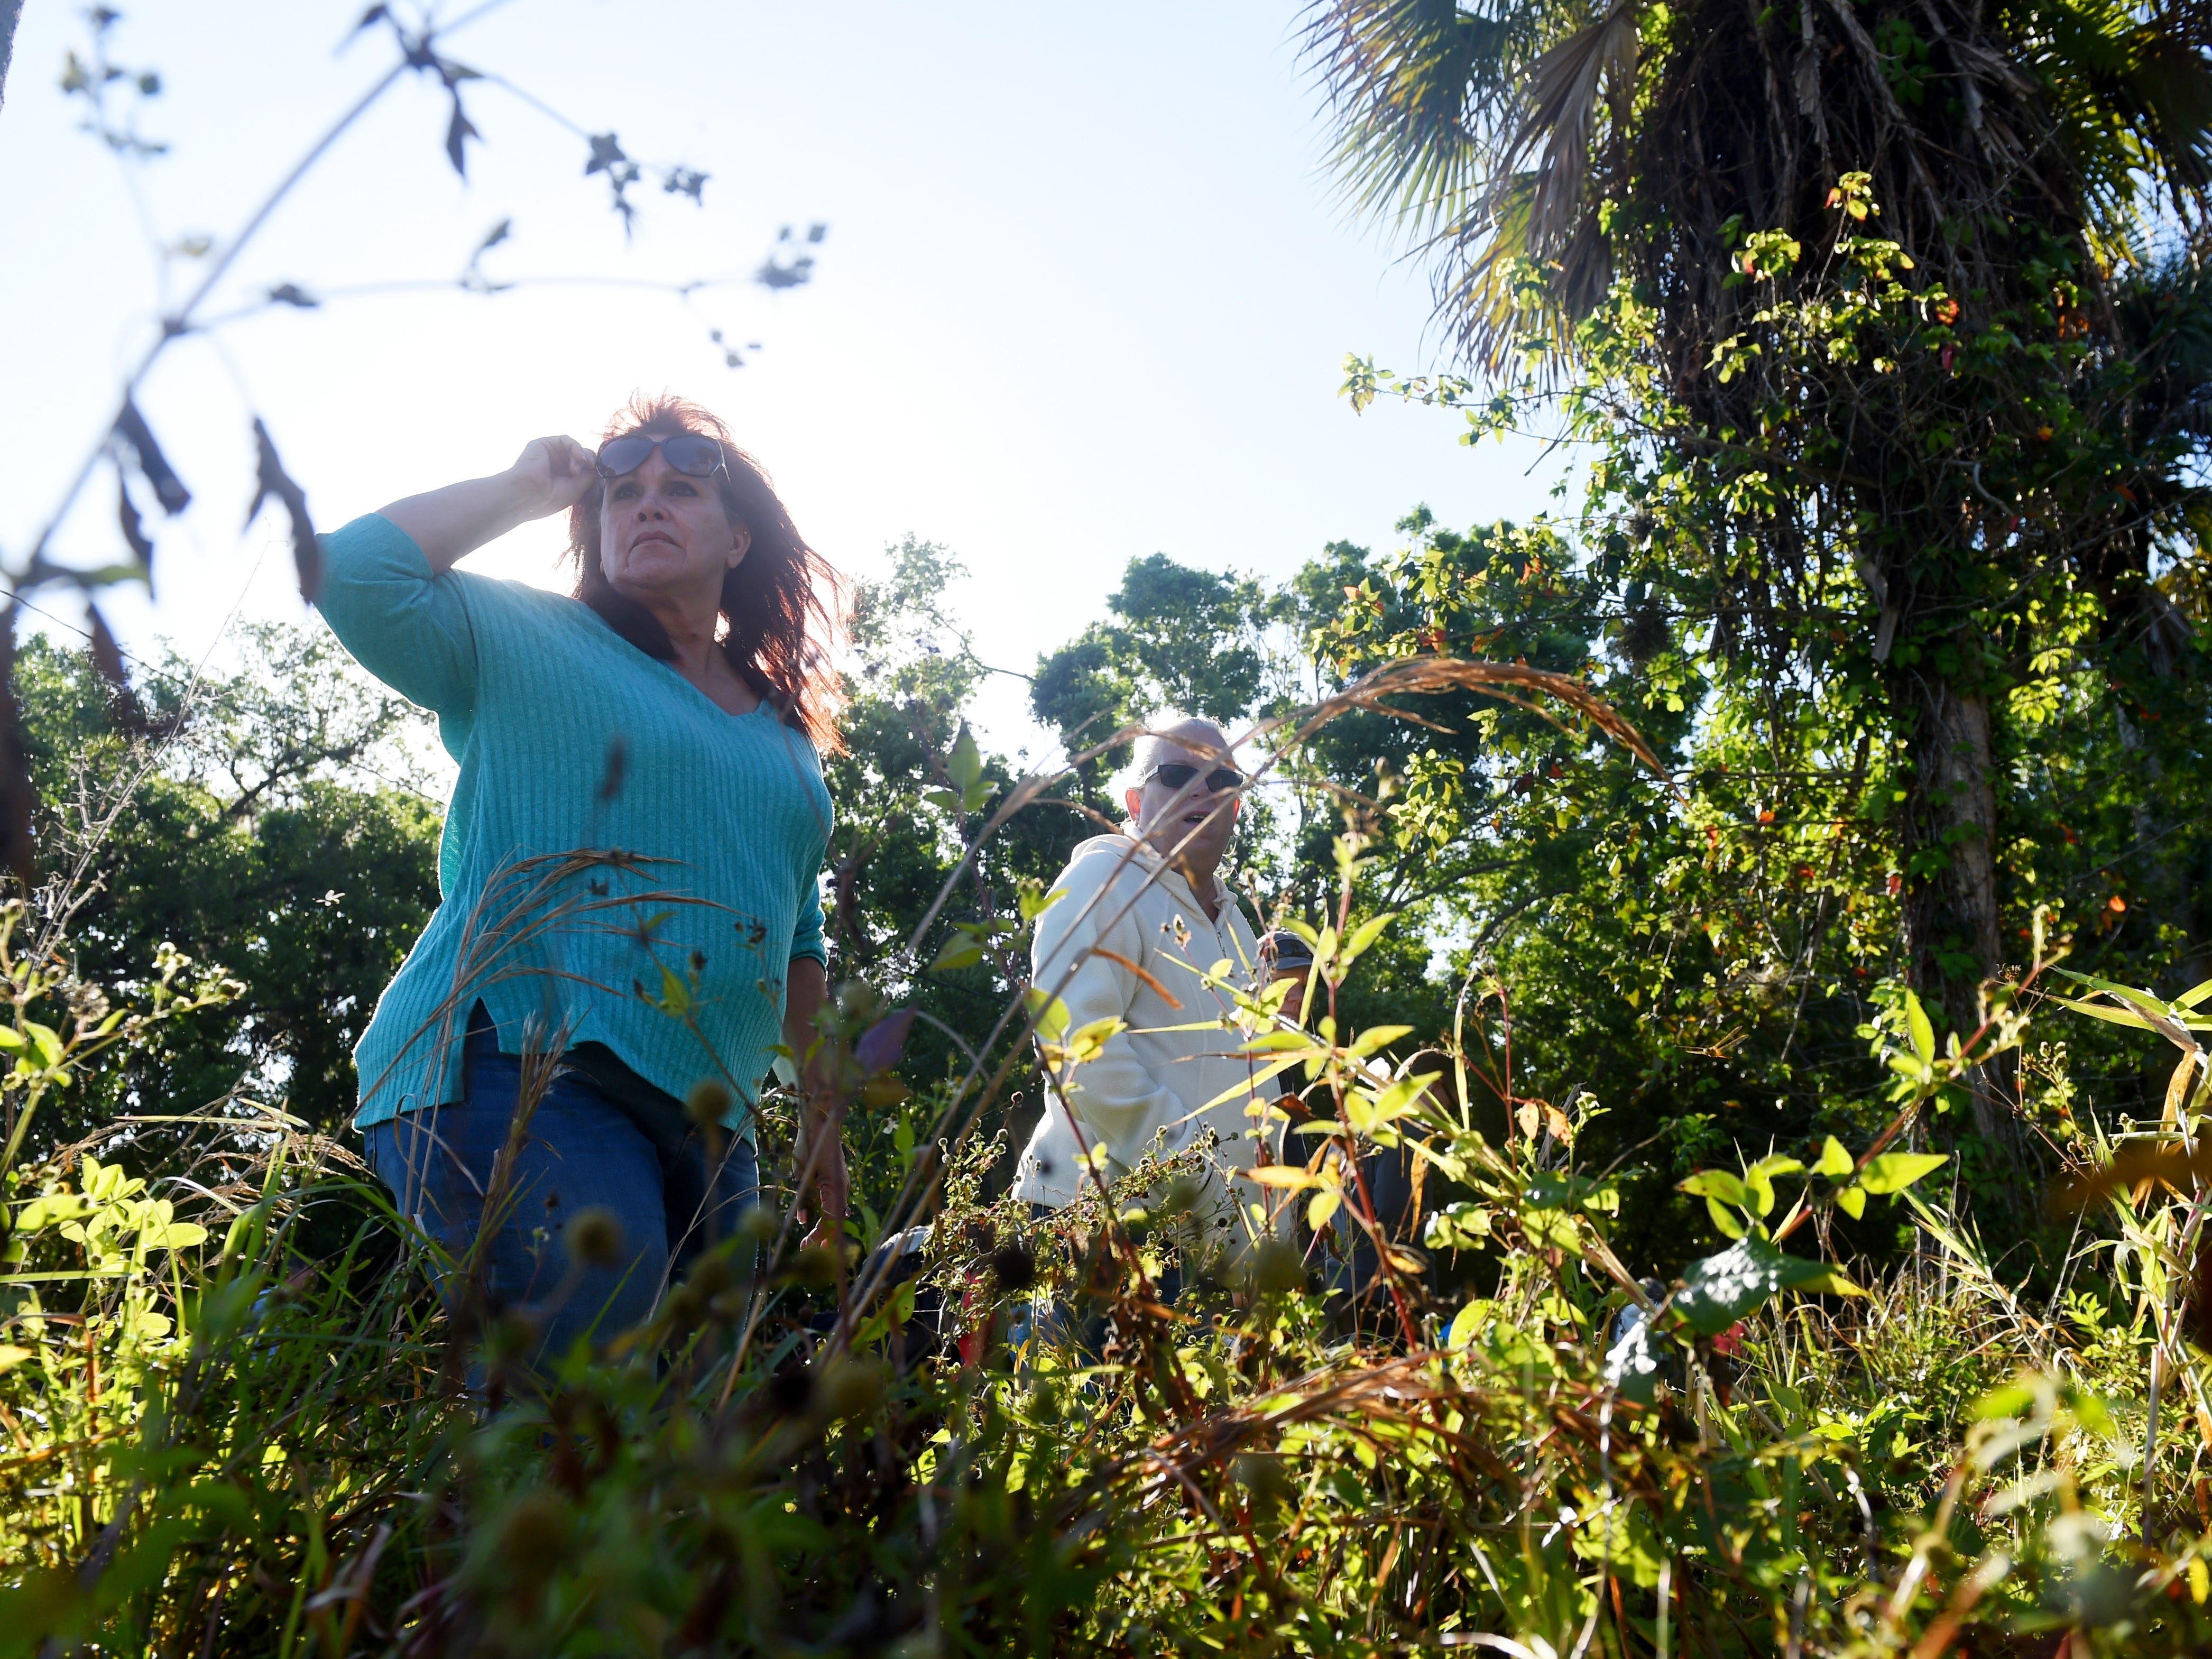 """Victoria Meissner (left) and Marcia Boyce, both of Vero Beach, make their way through thick brush as they take part in a search party on Wednesday, March 21, 2018 for a St. Lucie County woman who has been missing since Friday. Assunta """"Susy"""" Tomassi, who suffers from dementia, was last seen on foot along U.S.1 near Oslo Road Friday evening. The Indian River County Sheriff's Office helped in the search with a helicopter, K-9 units and all-terrain vehicles."""